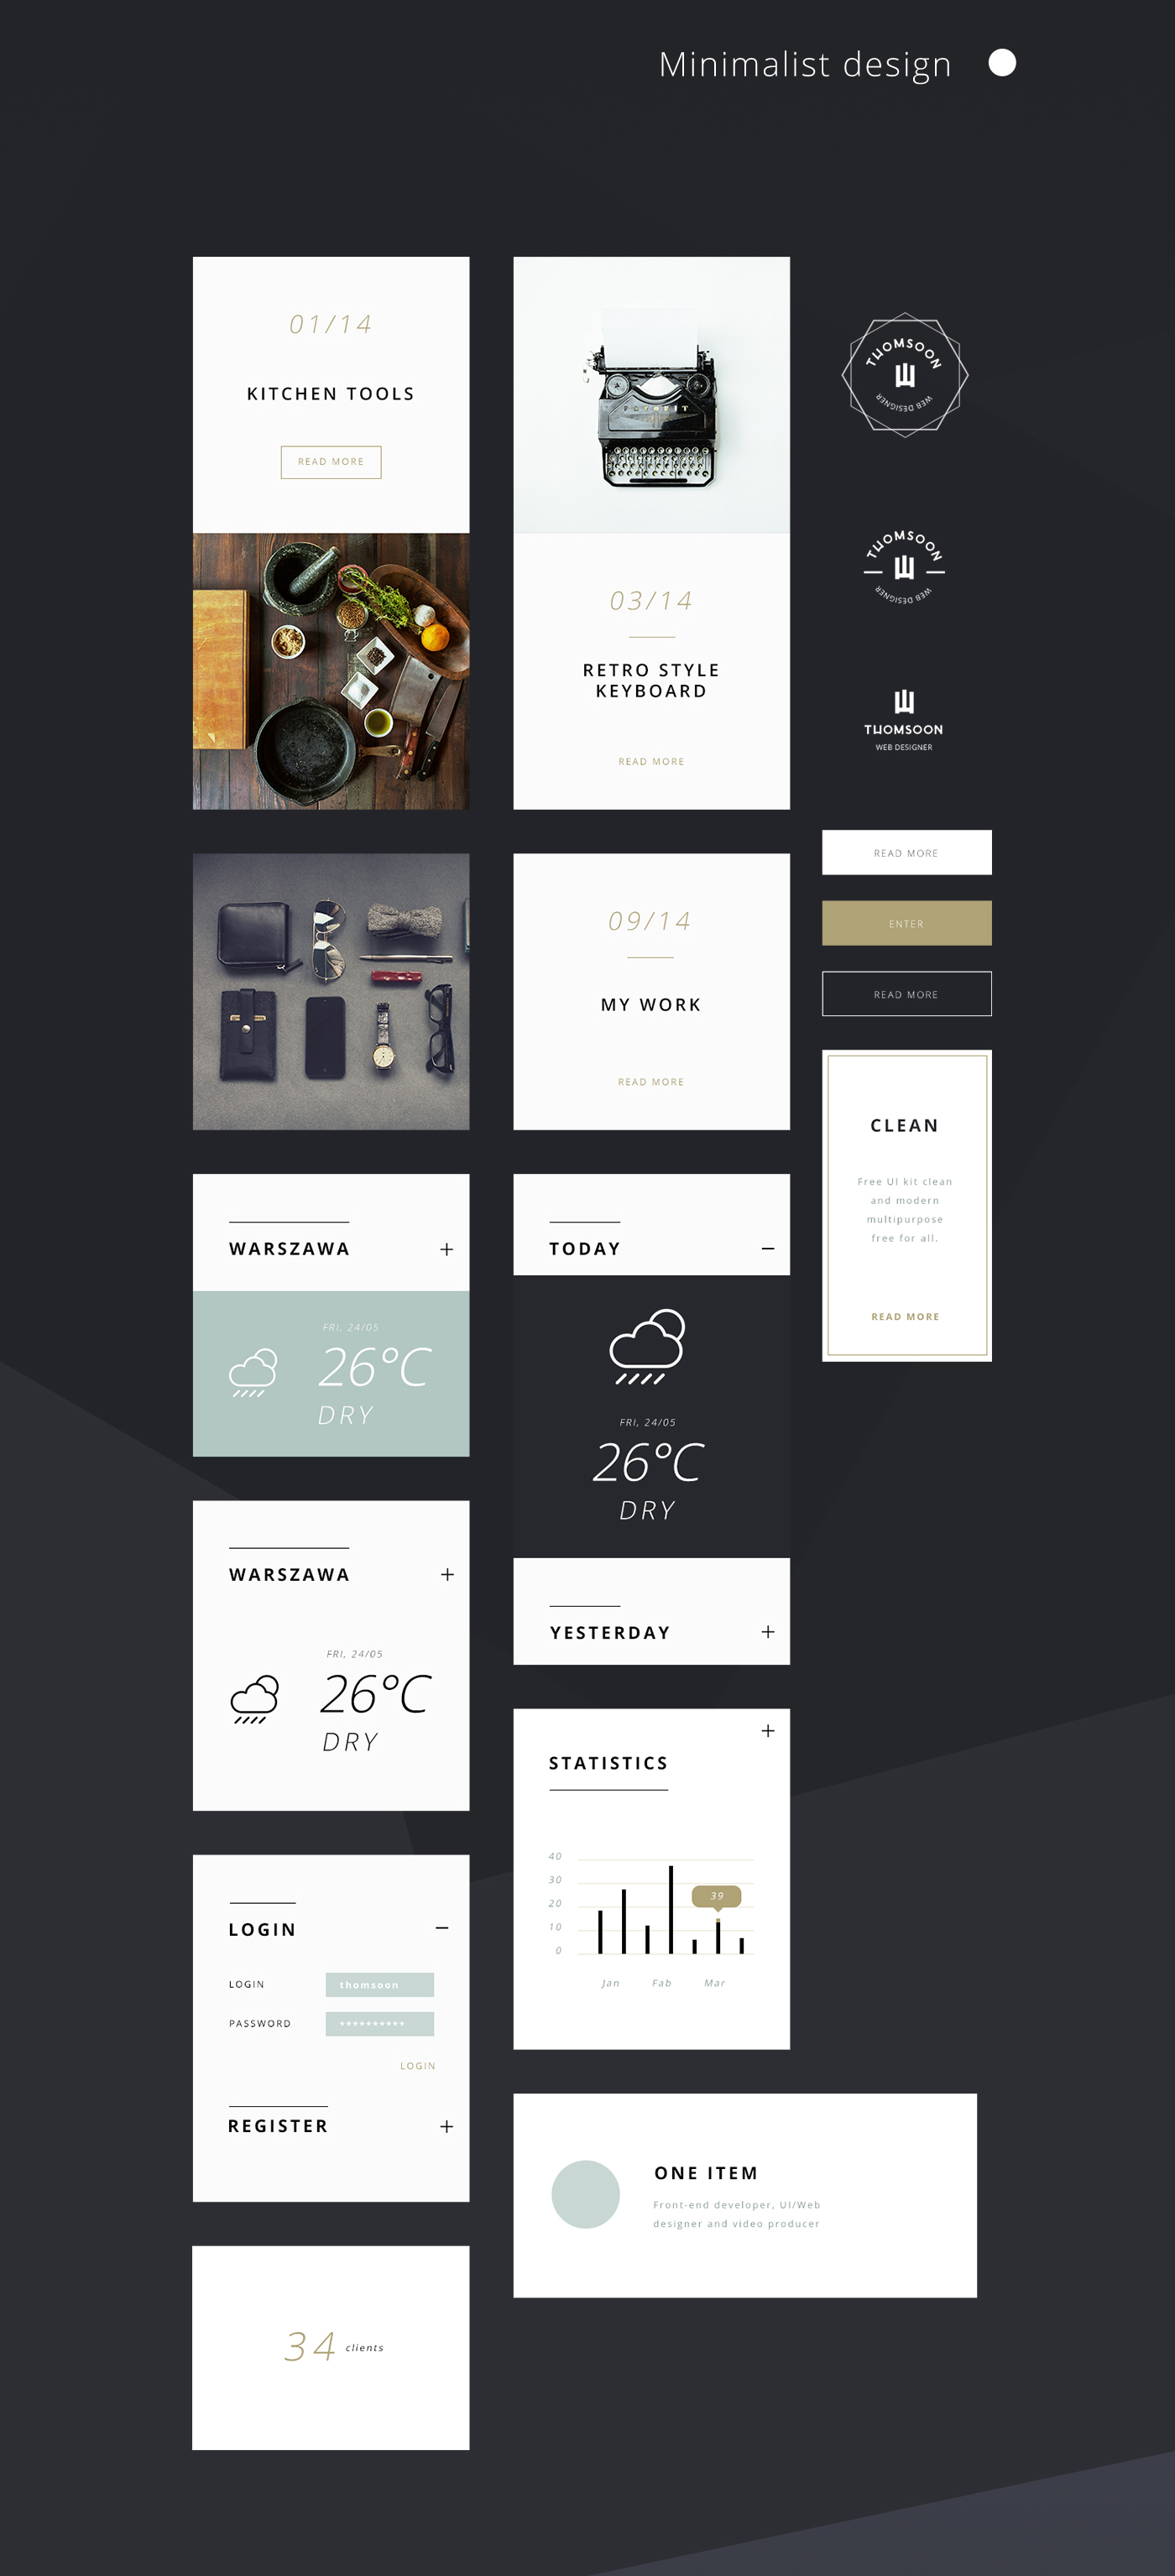 55 Elements UI Kit for Free with Minimalist Design Components